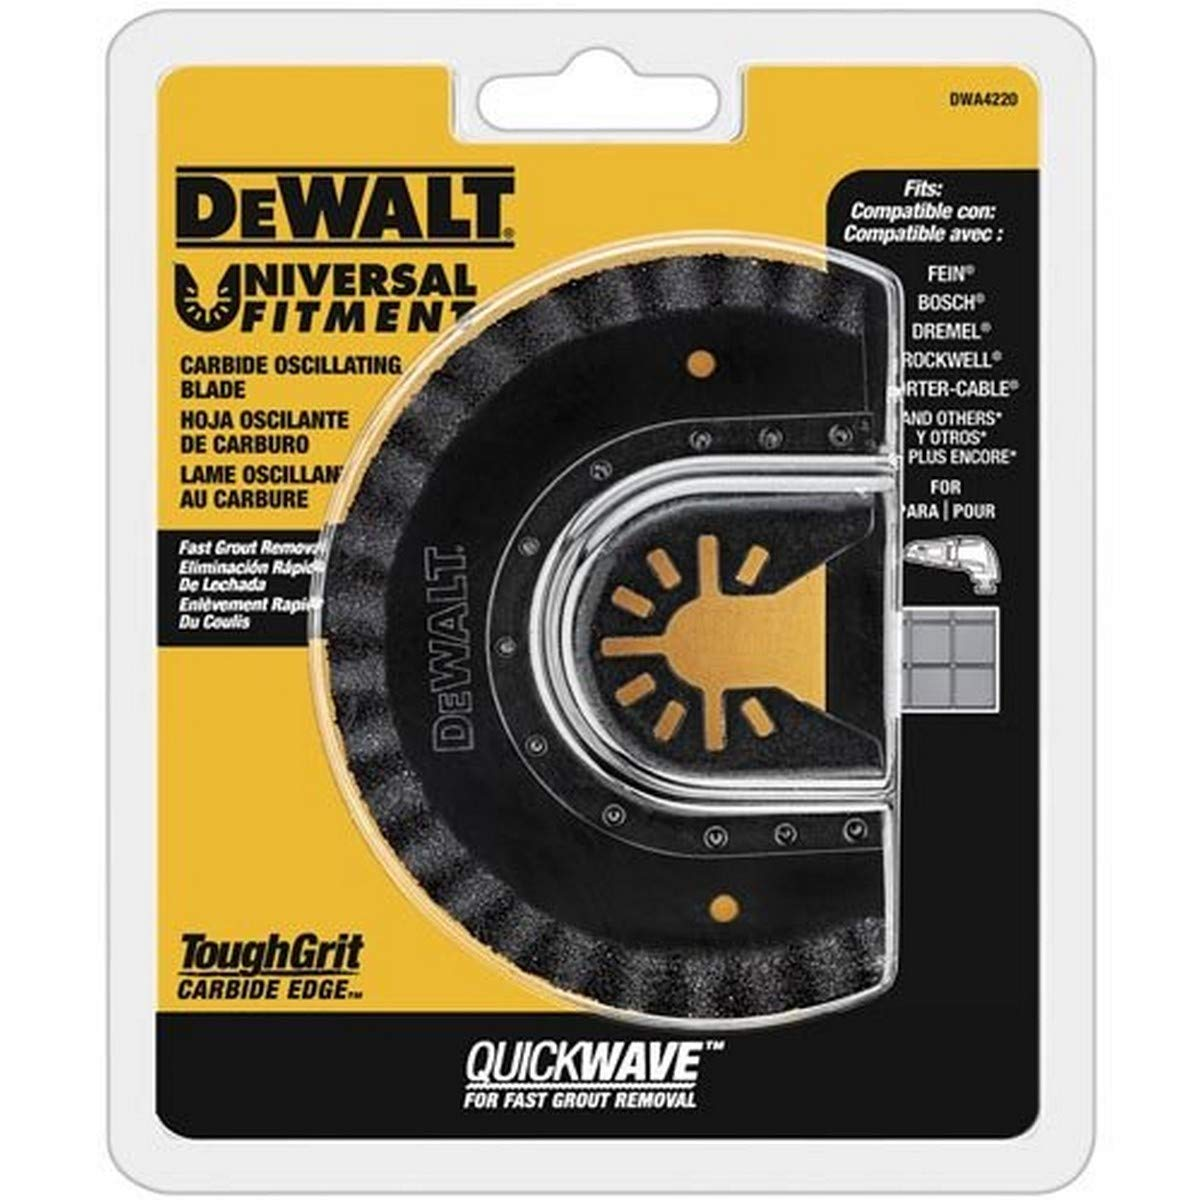 DEWALT Oscillating Tool Blade for Grout Removal, Fast Cutting, Carbide (DWA4220)